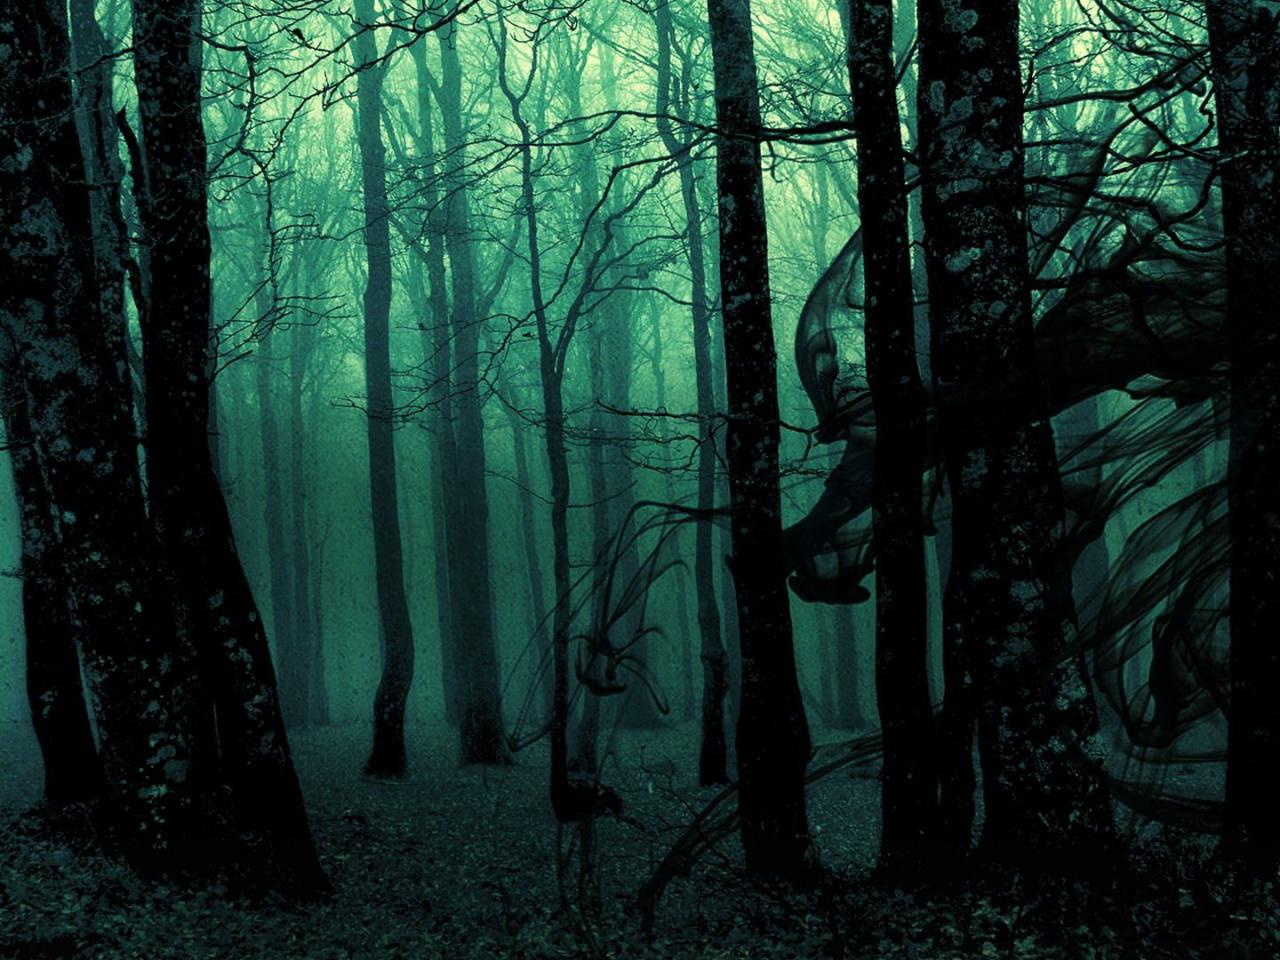 Black and white pictures anime forest 1 desktop background - Anime forest background ...